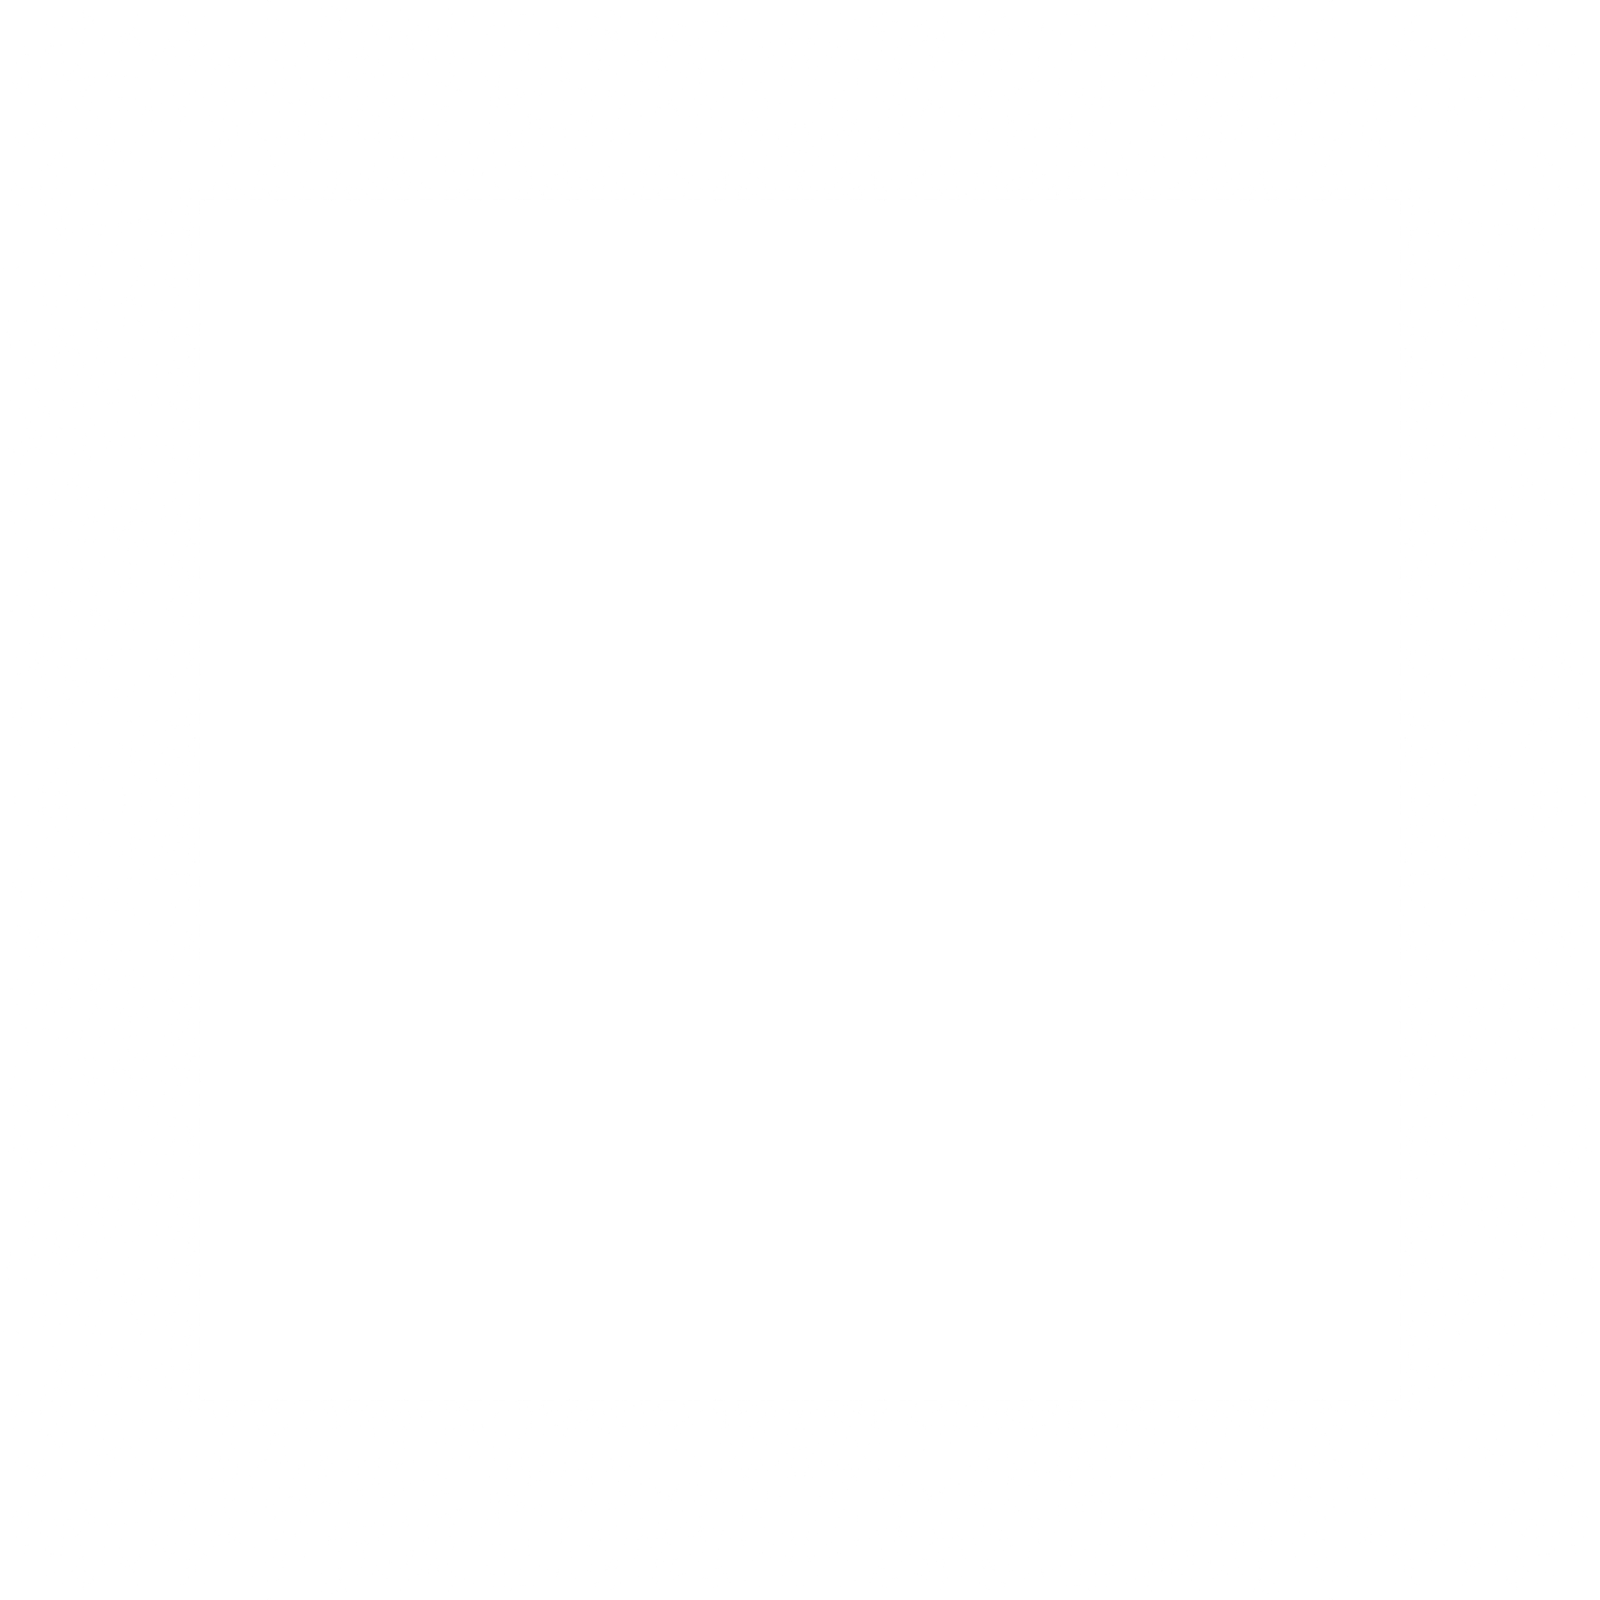 Download and use border. Square clipart lace